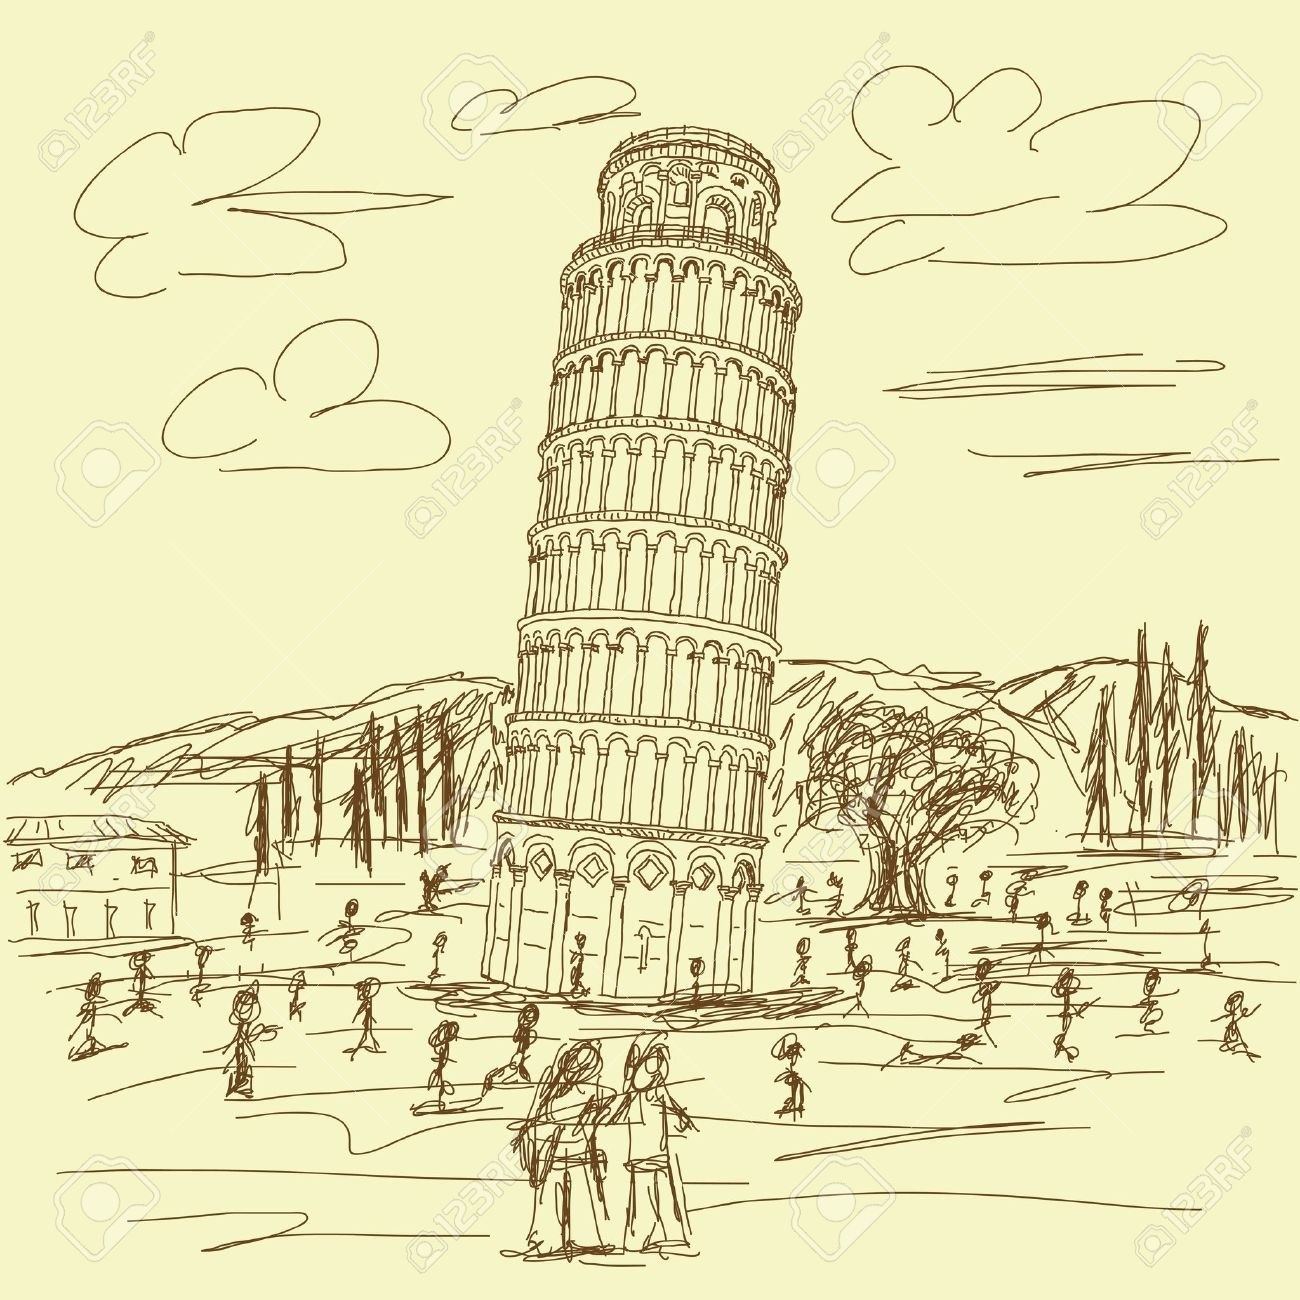 leaning tower of pisa coloring page coloring pages tiger tigers